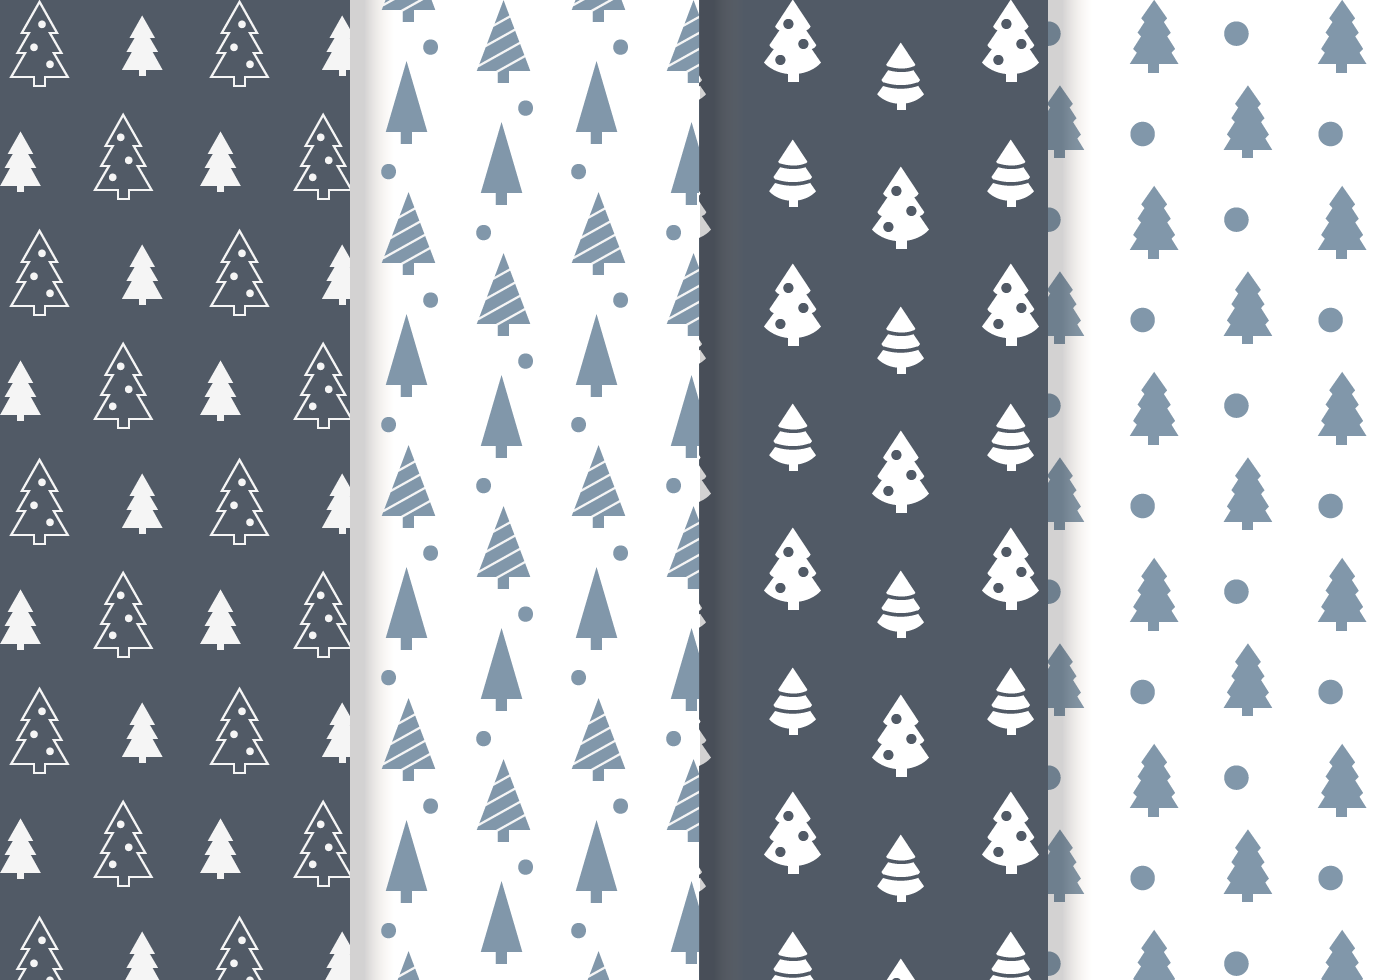 Free Christmas Tree Pattern Vector - Download Free Vector ...